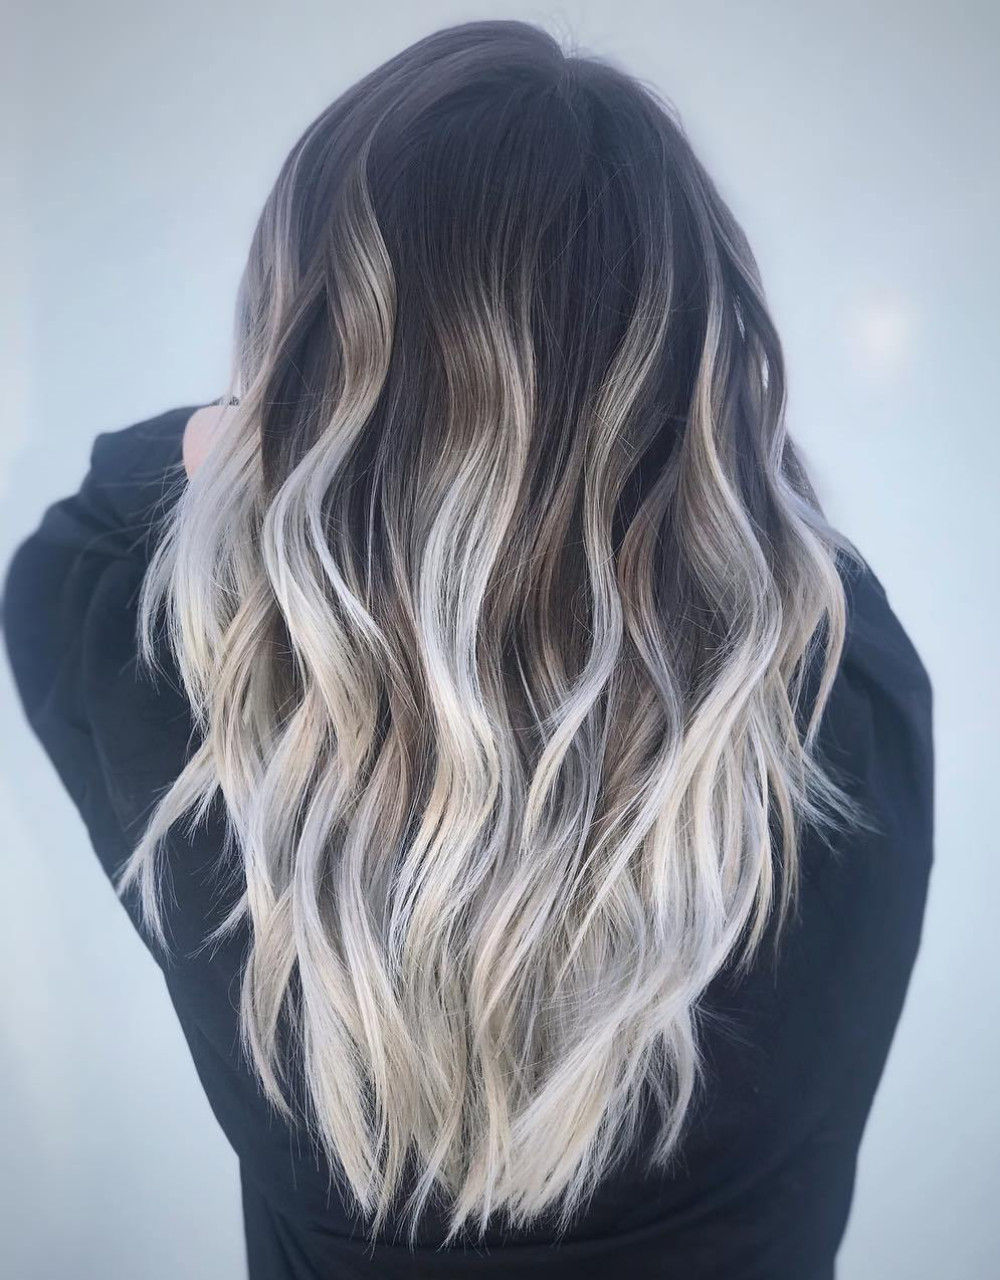 Silver Highlights for Dark Hair